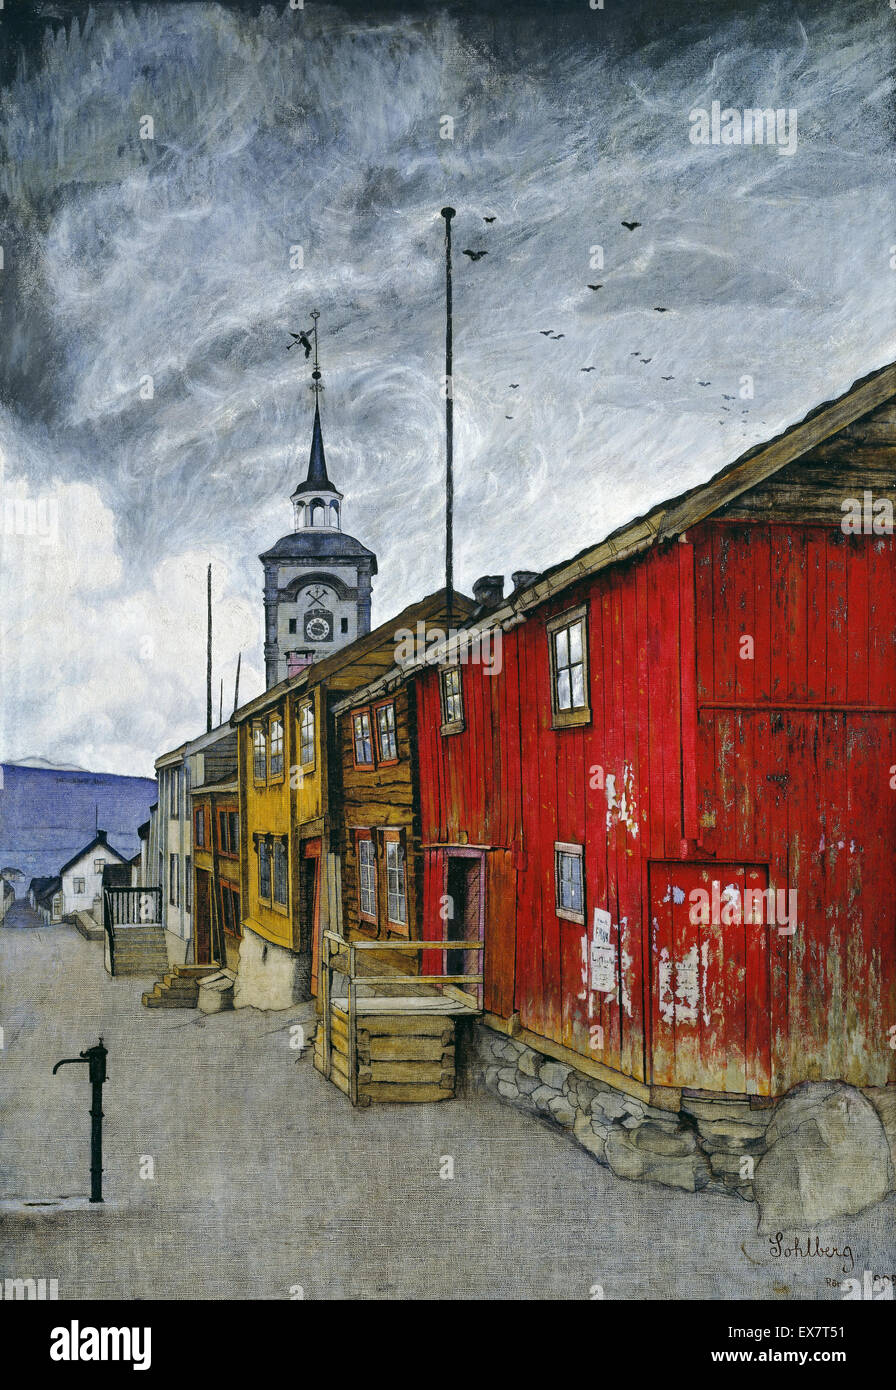 Harald Sohlberg, Street in Roros 1902 Oil on canvas. National Museum of Art, Architecture and Design, Oslo, Norway. - Stock Image